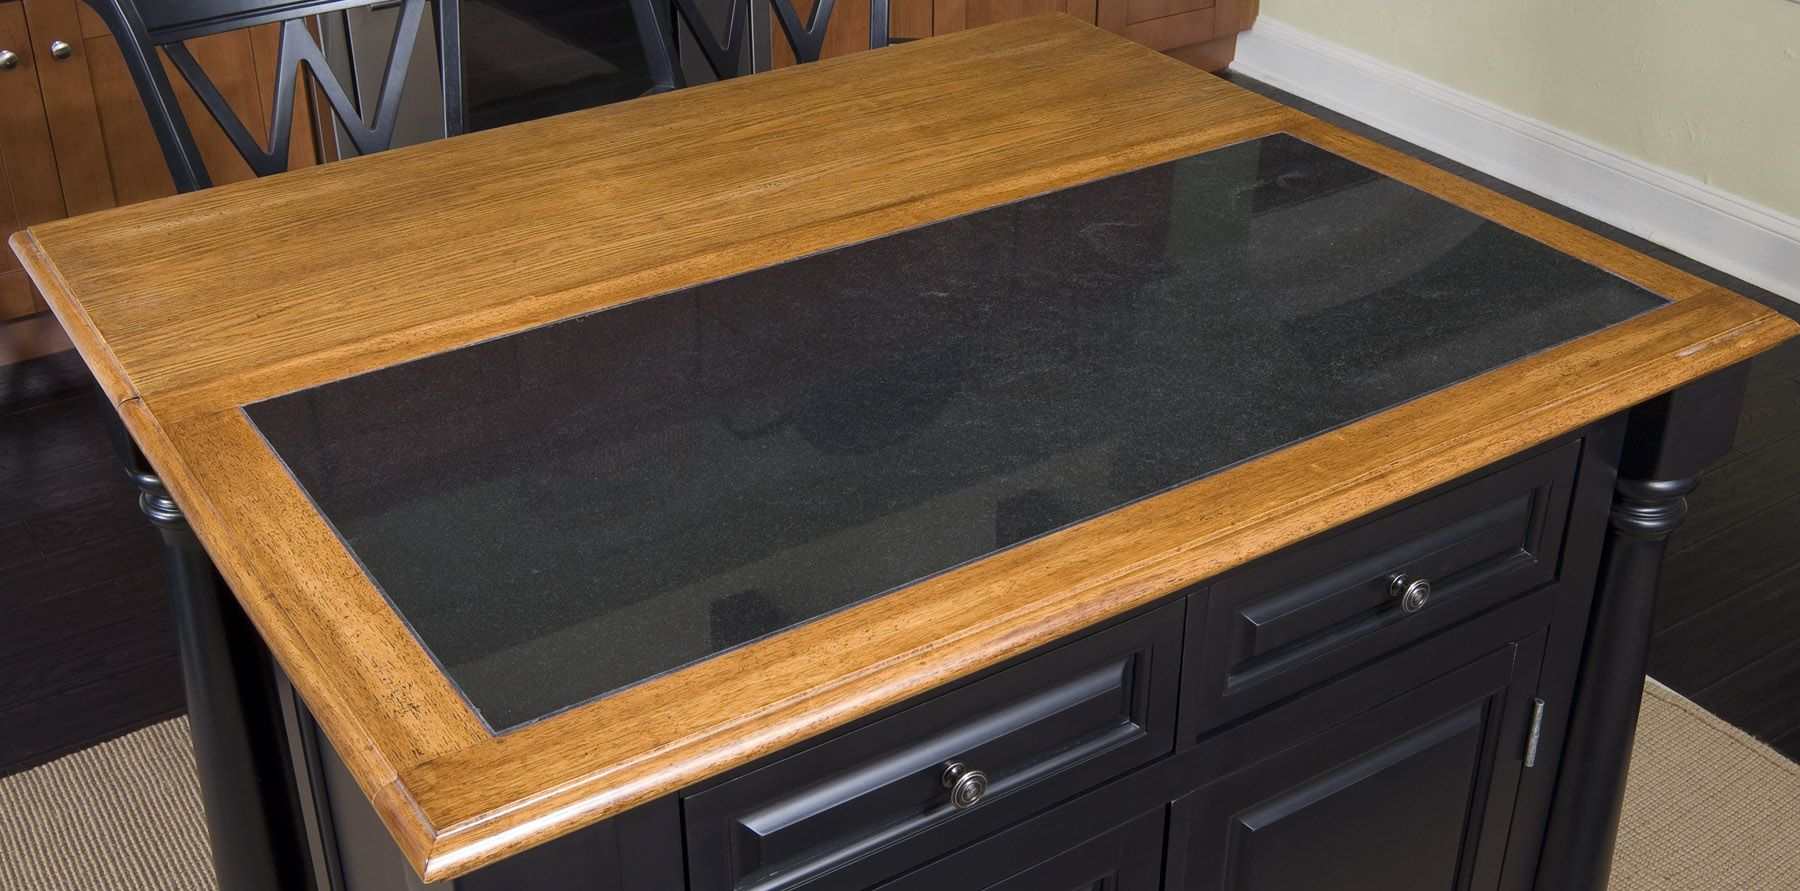 Monarch Granite Top Kitchen Island & Two Stools                                                                                  at mygofer.com